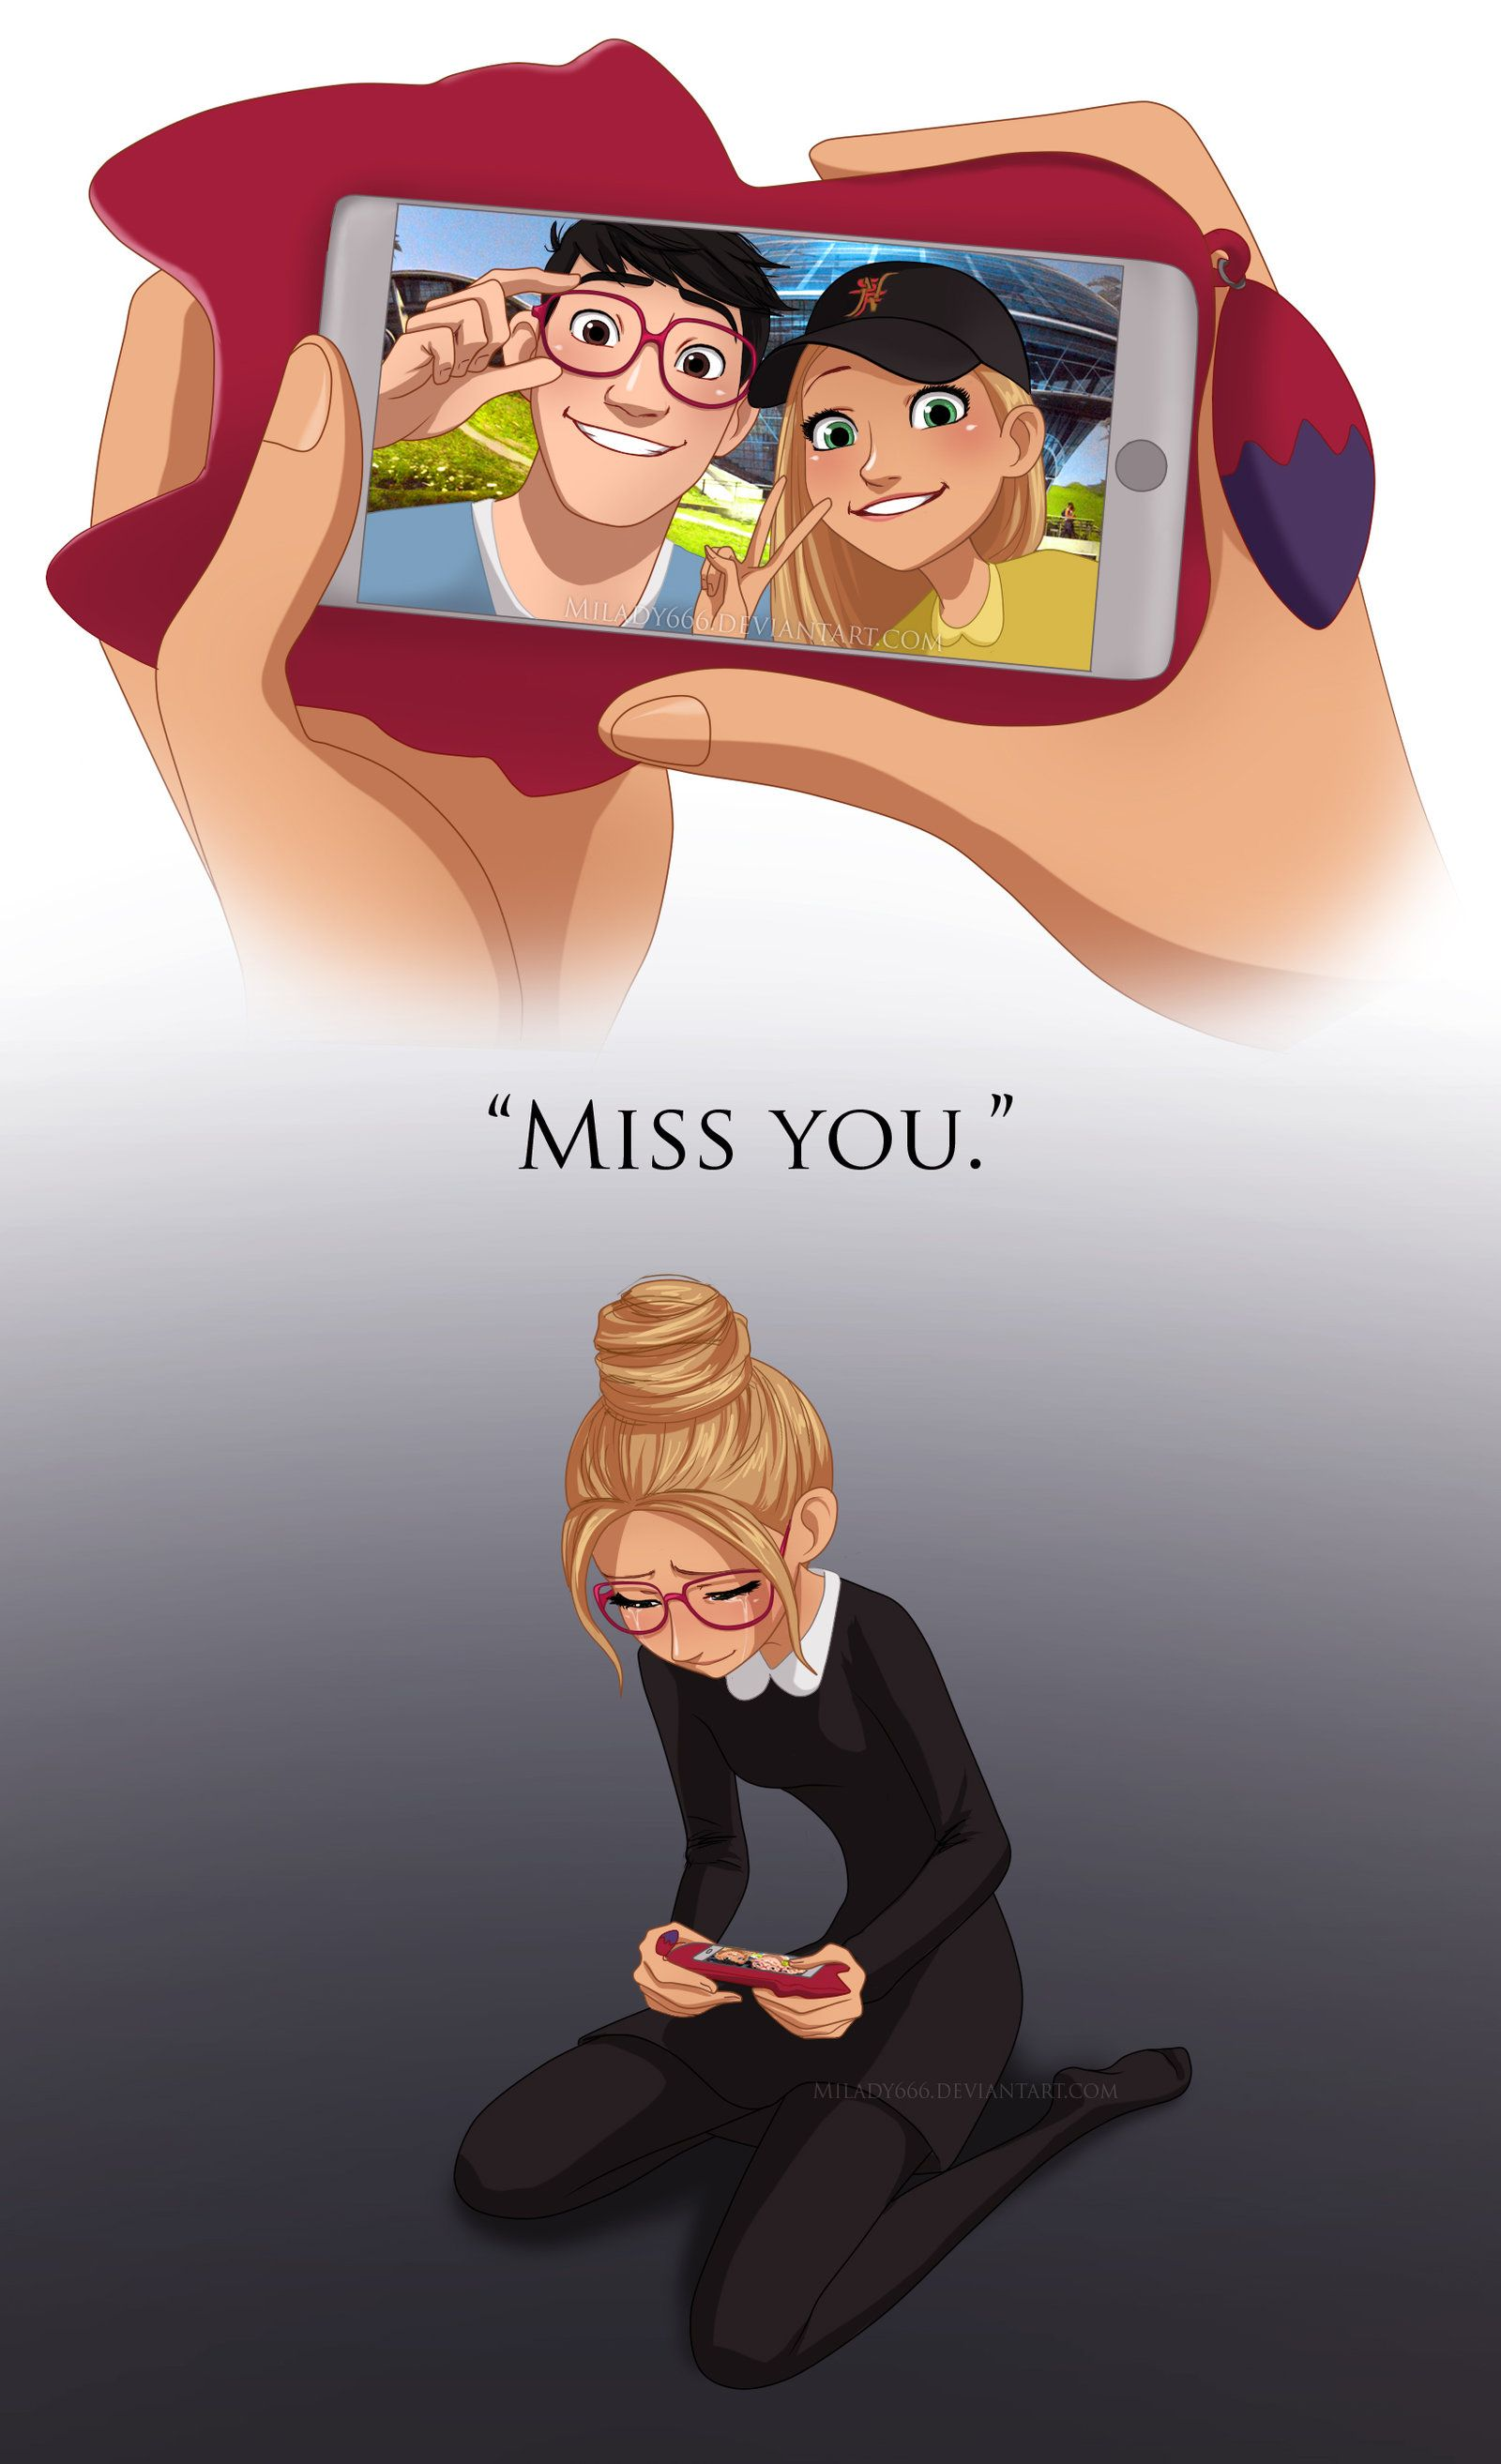 Miss you by Milady666.deviantart.com on @deviantART | really i love this fanart